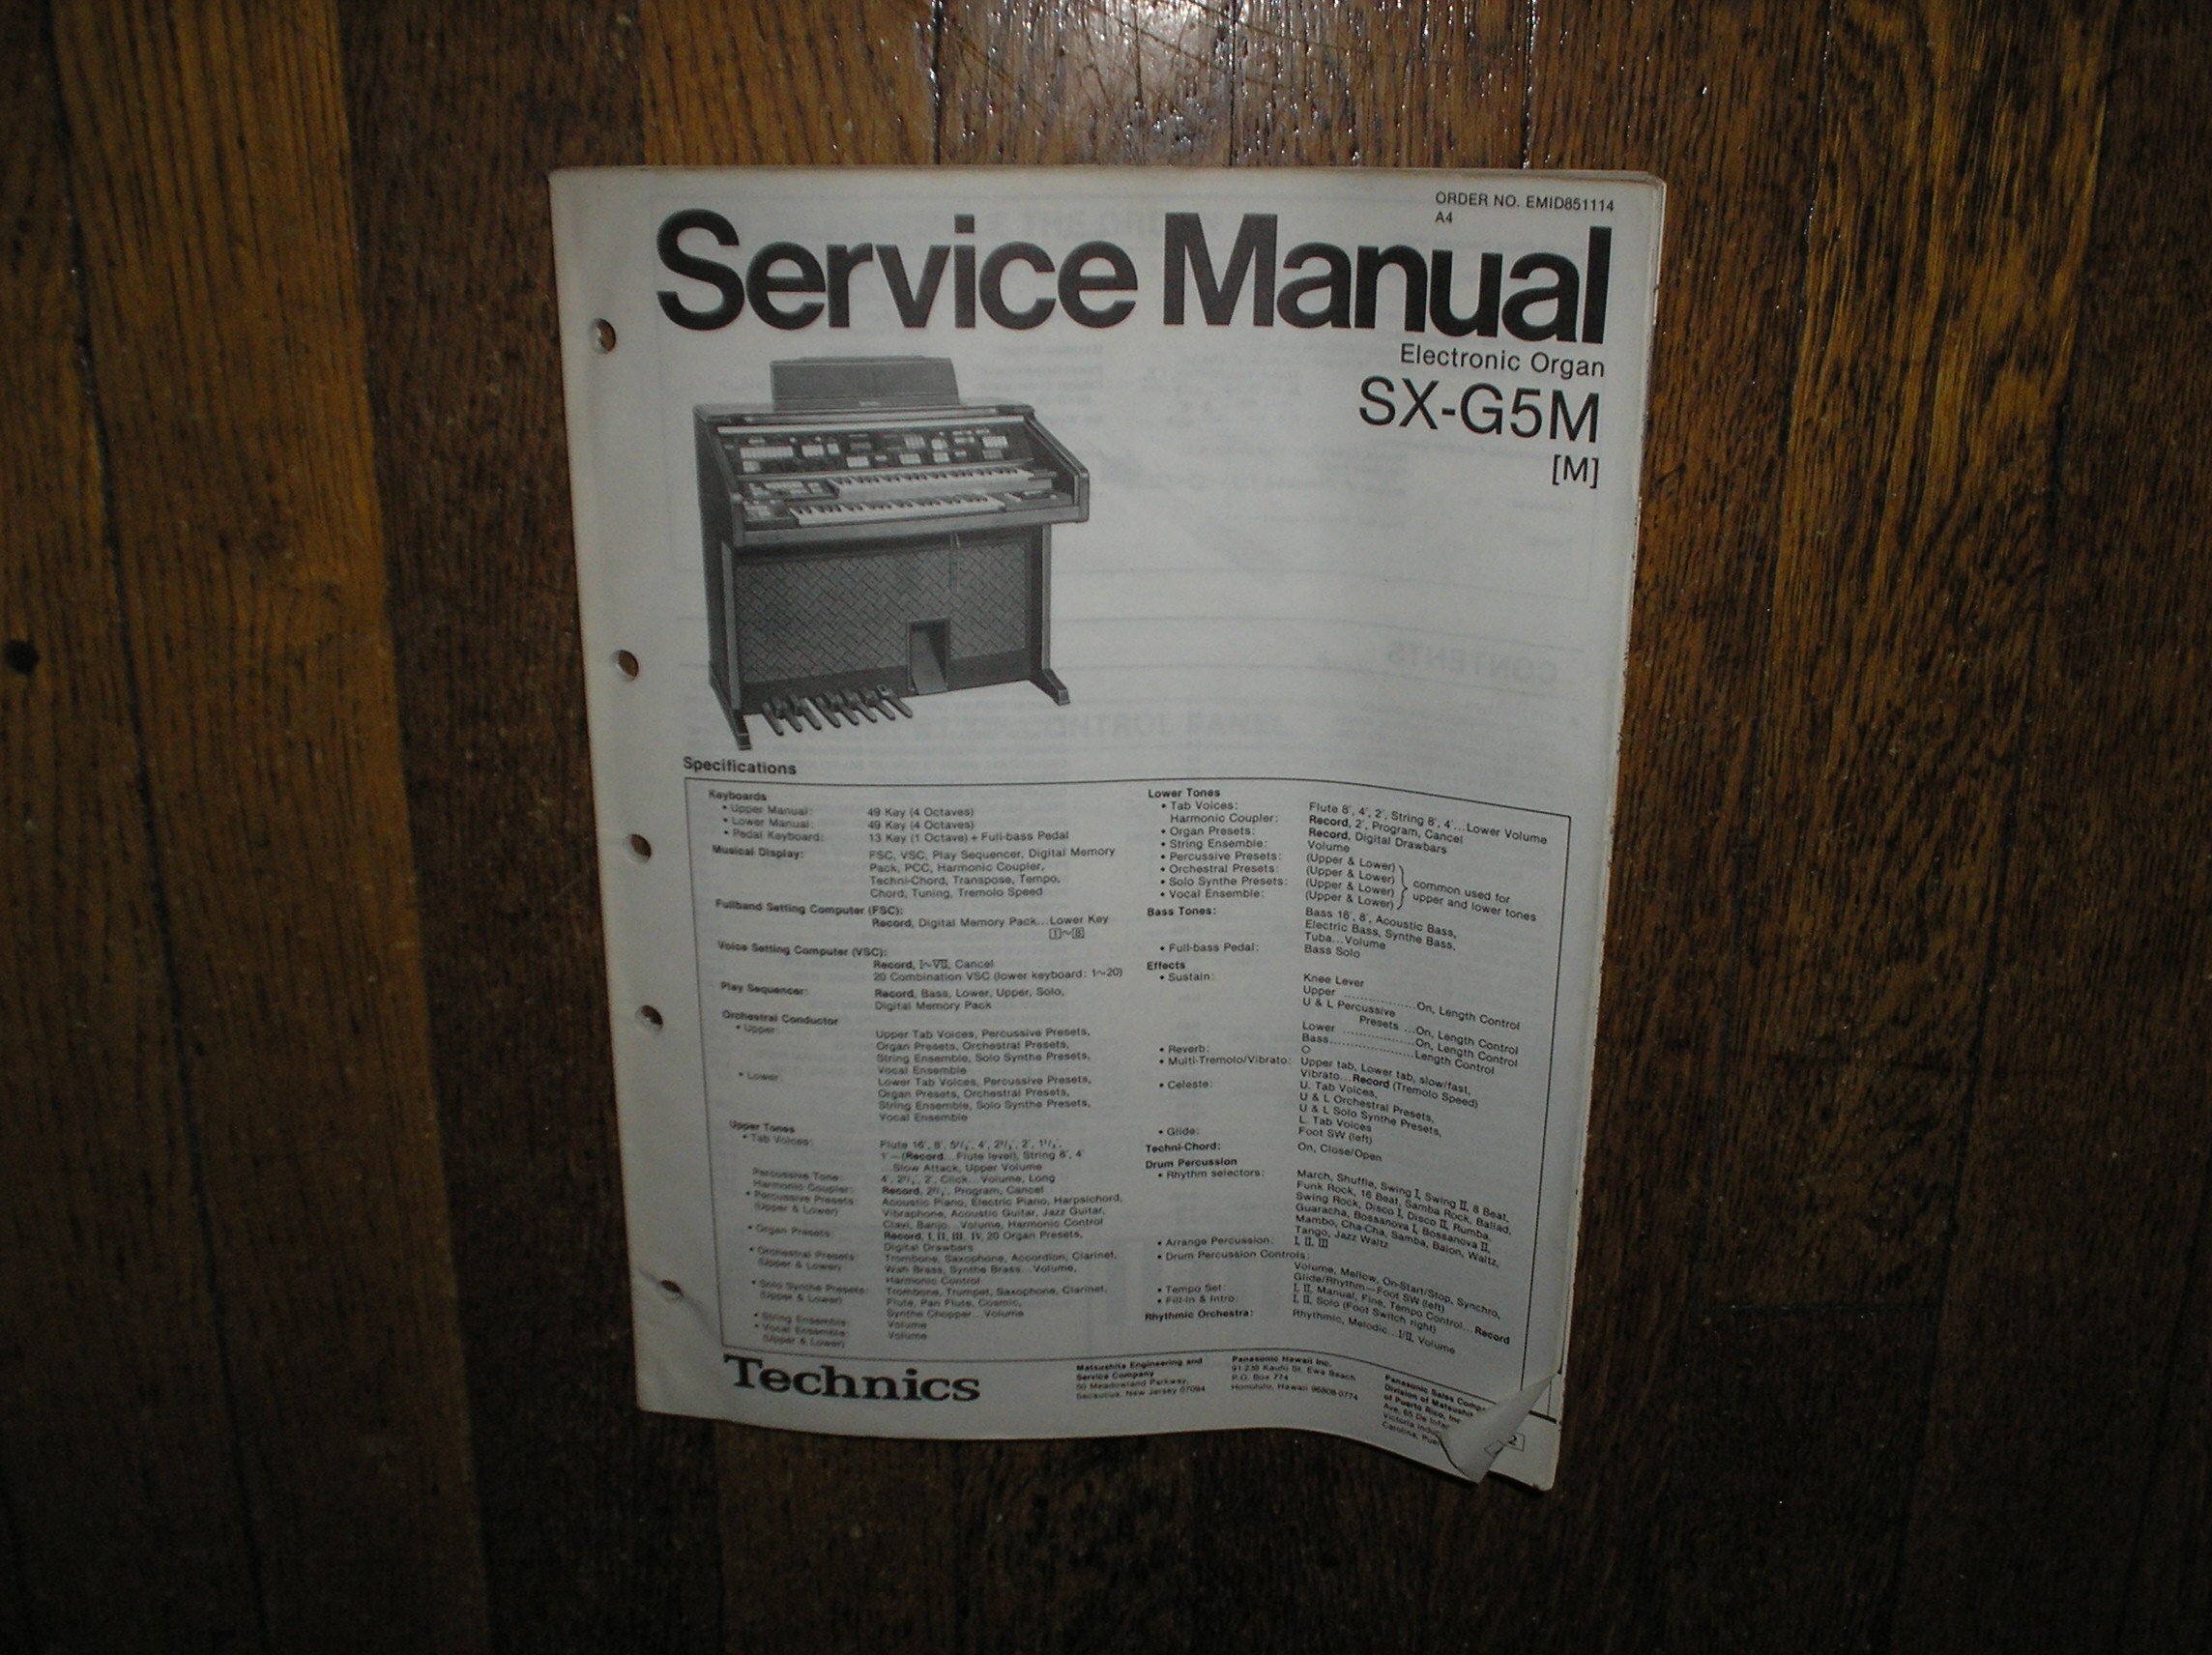 SX-G5M  m  Electric Organ Service Manual